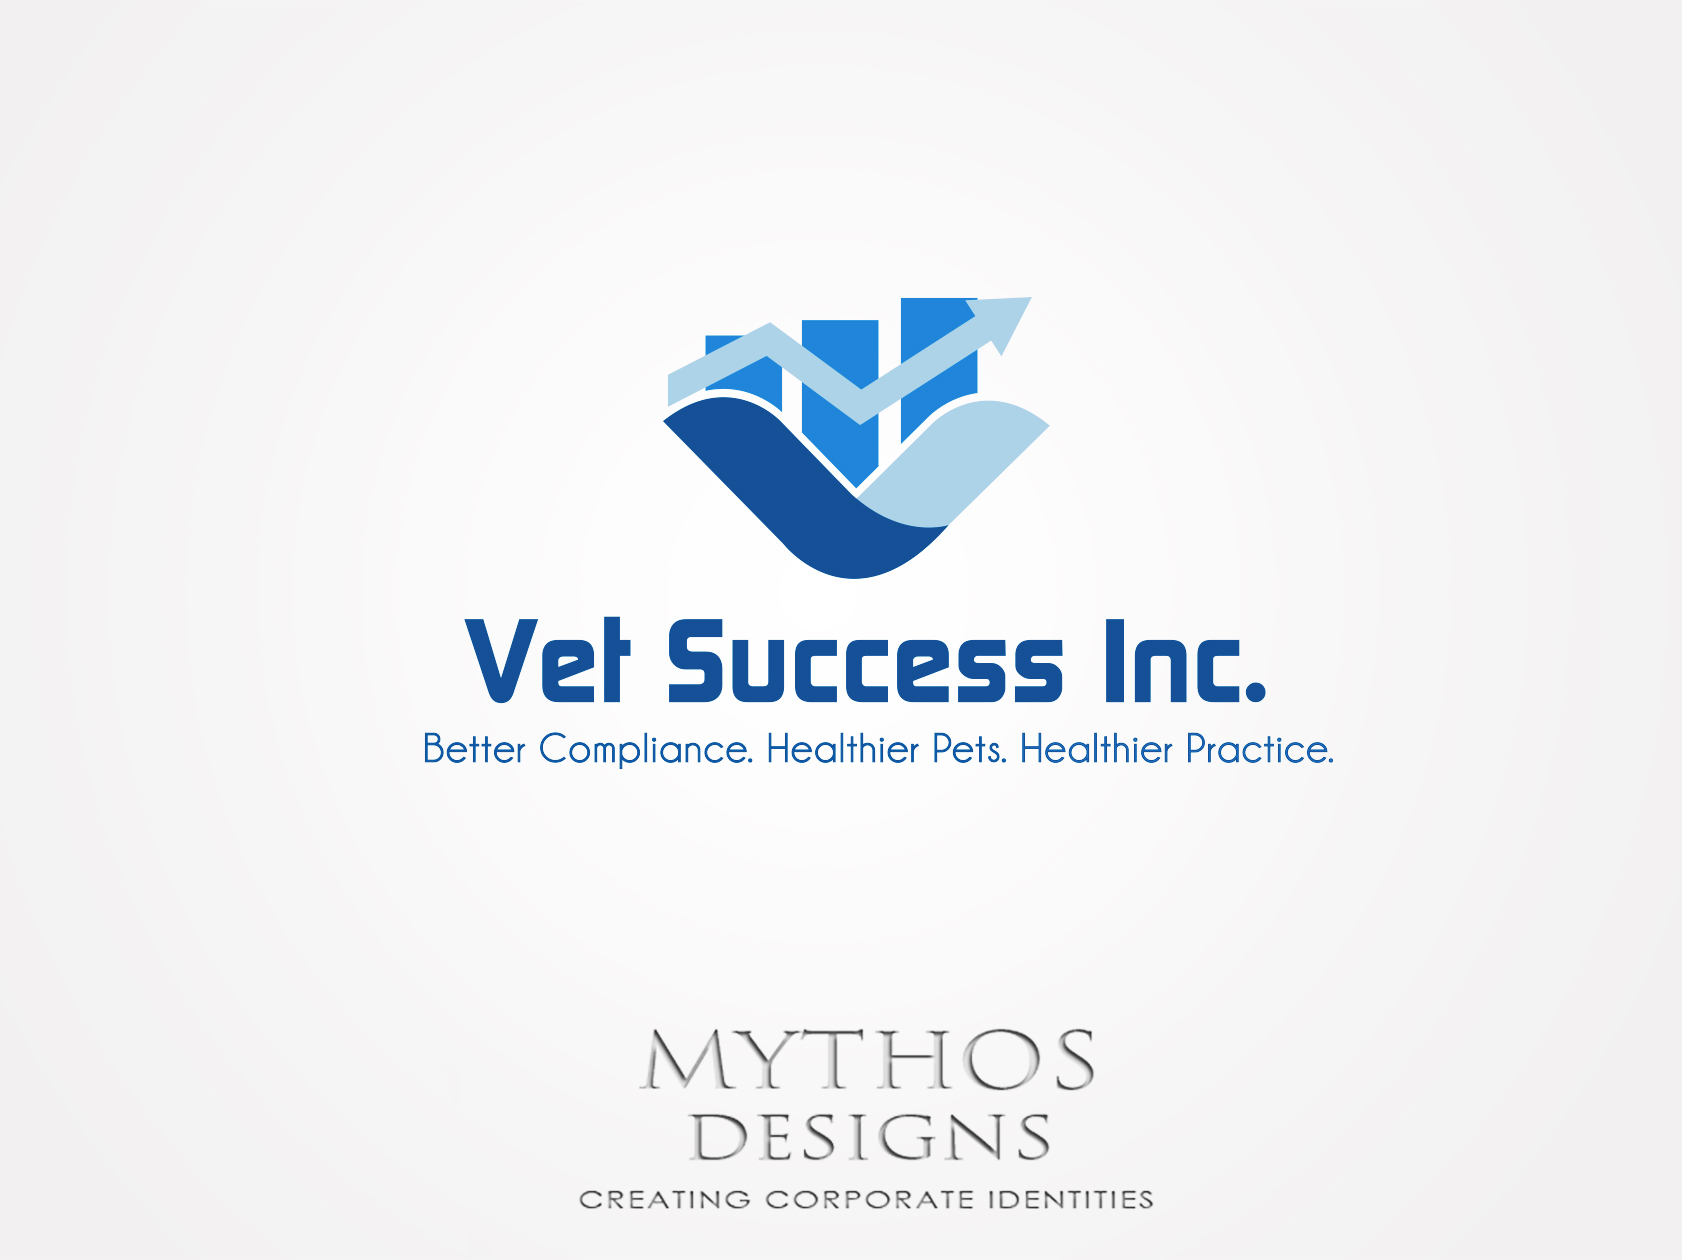 Logo Design by Mythos Designs - Entry No. 114 in the Logo Design Contest Imaginative Logo Design for Vet Success Inc..